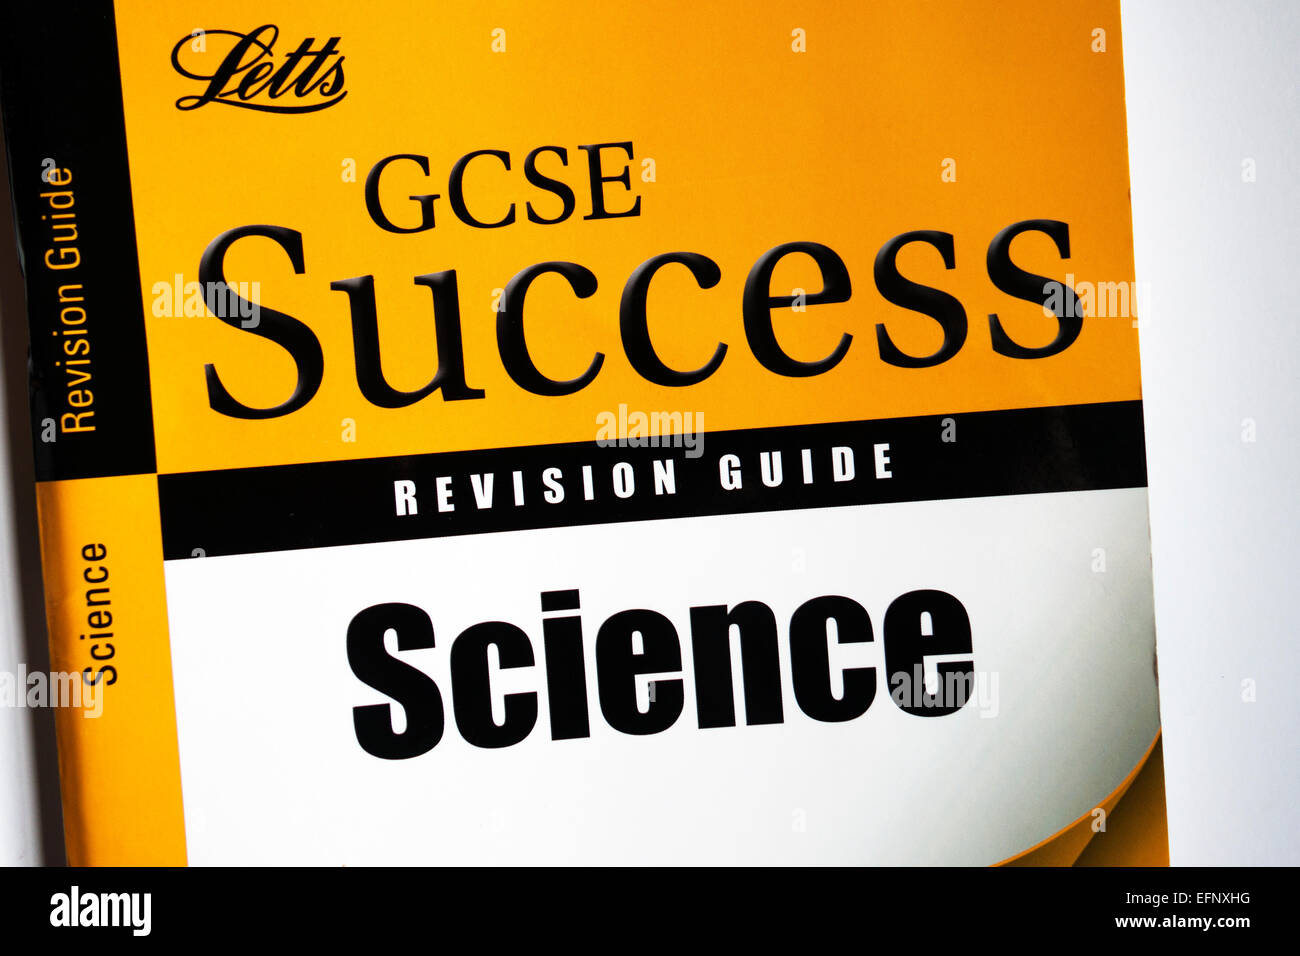 gcse science revision book - Stock Image